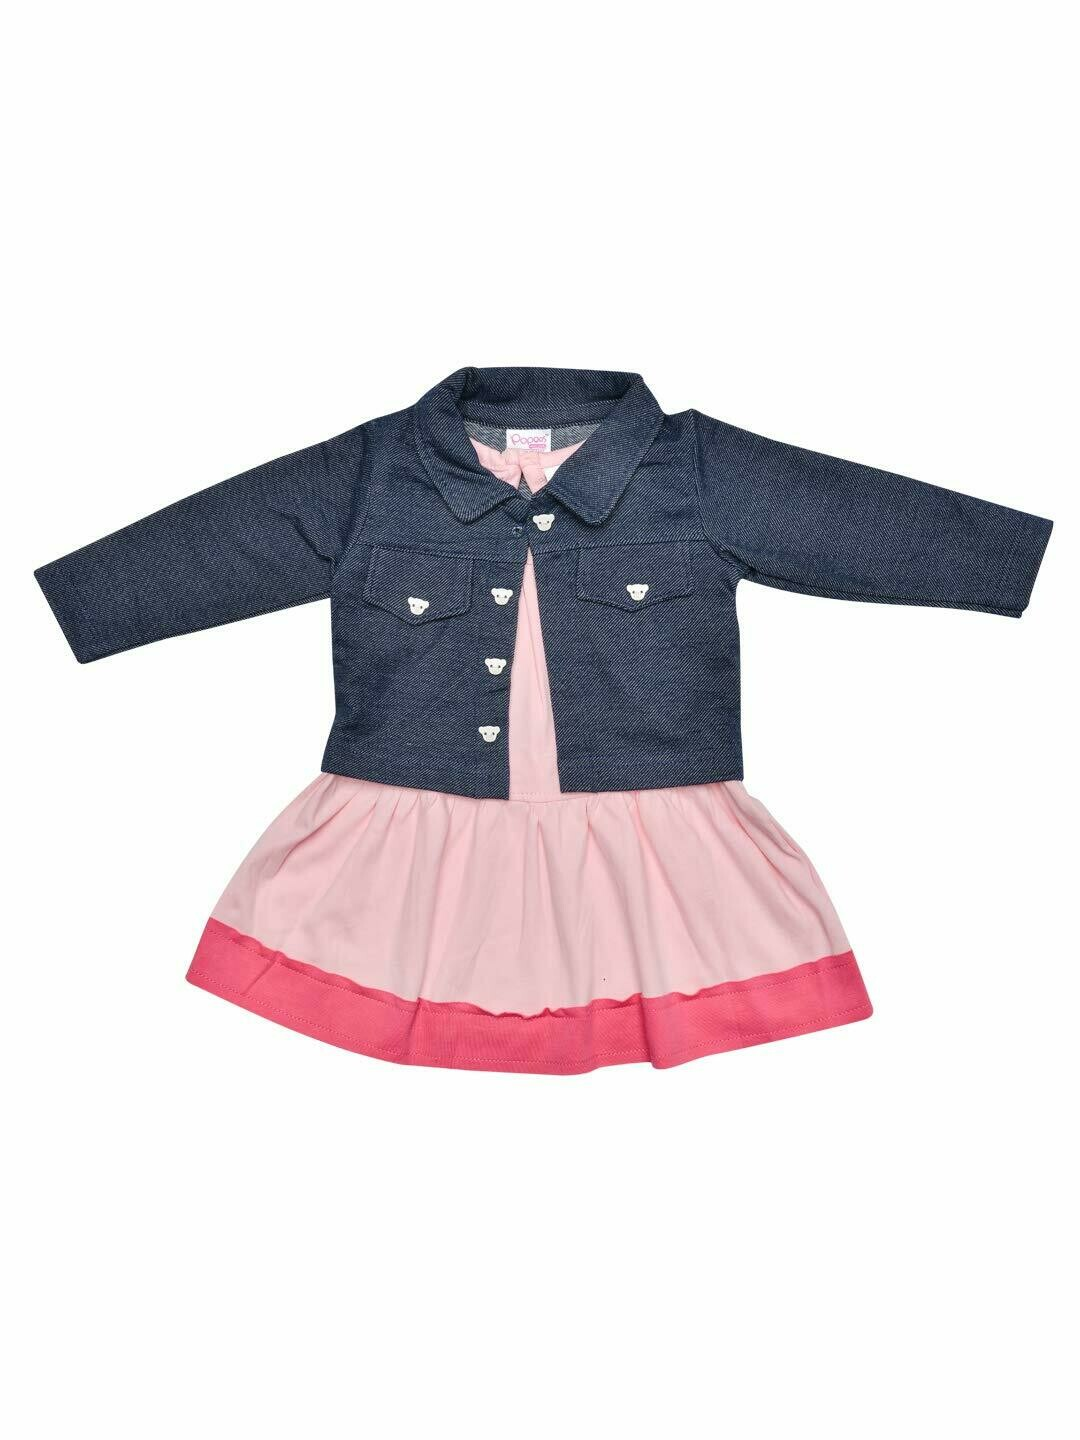 Juna Rose Frock with Full sleeves Jacket for Baby Girls